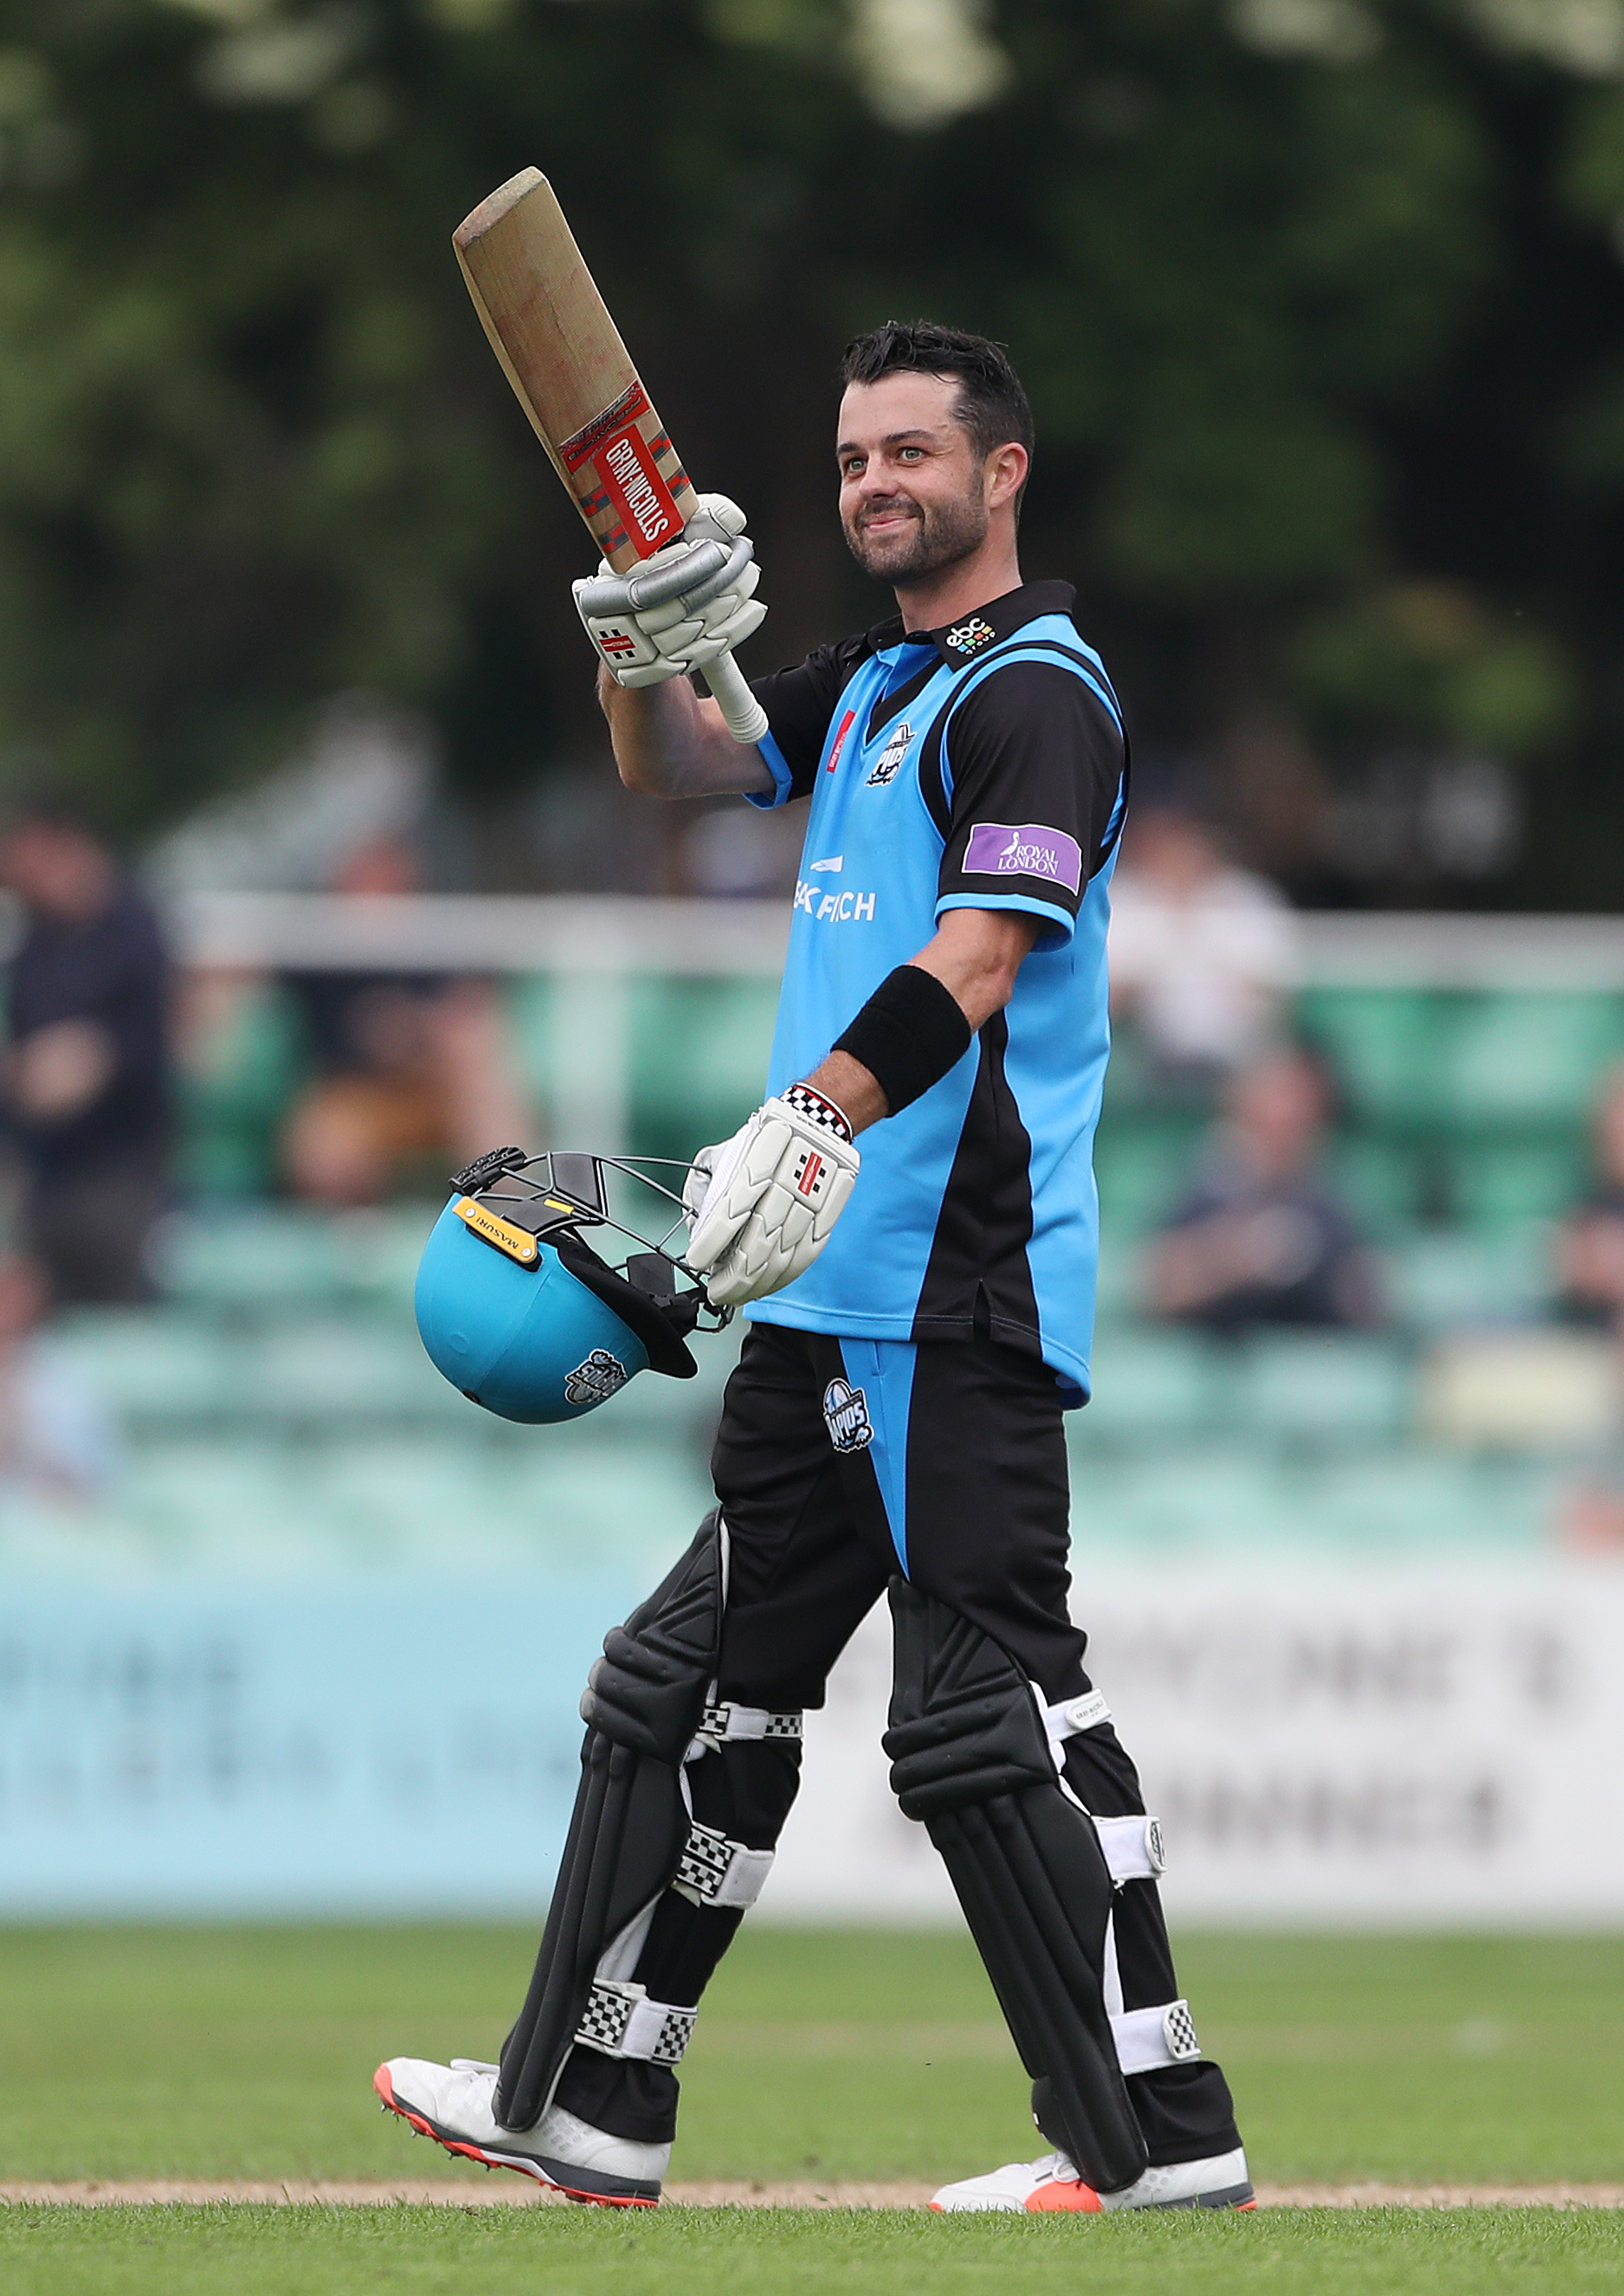 Worcestershire's Callum Ferguson reaches his century during the North Group match of the Royal London One Day Cup at New Road, Worcester..